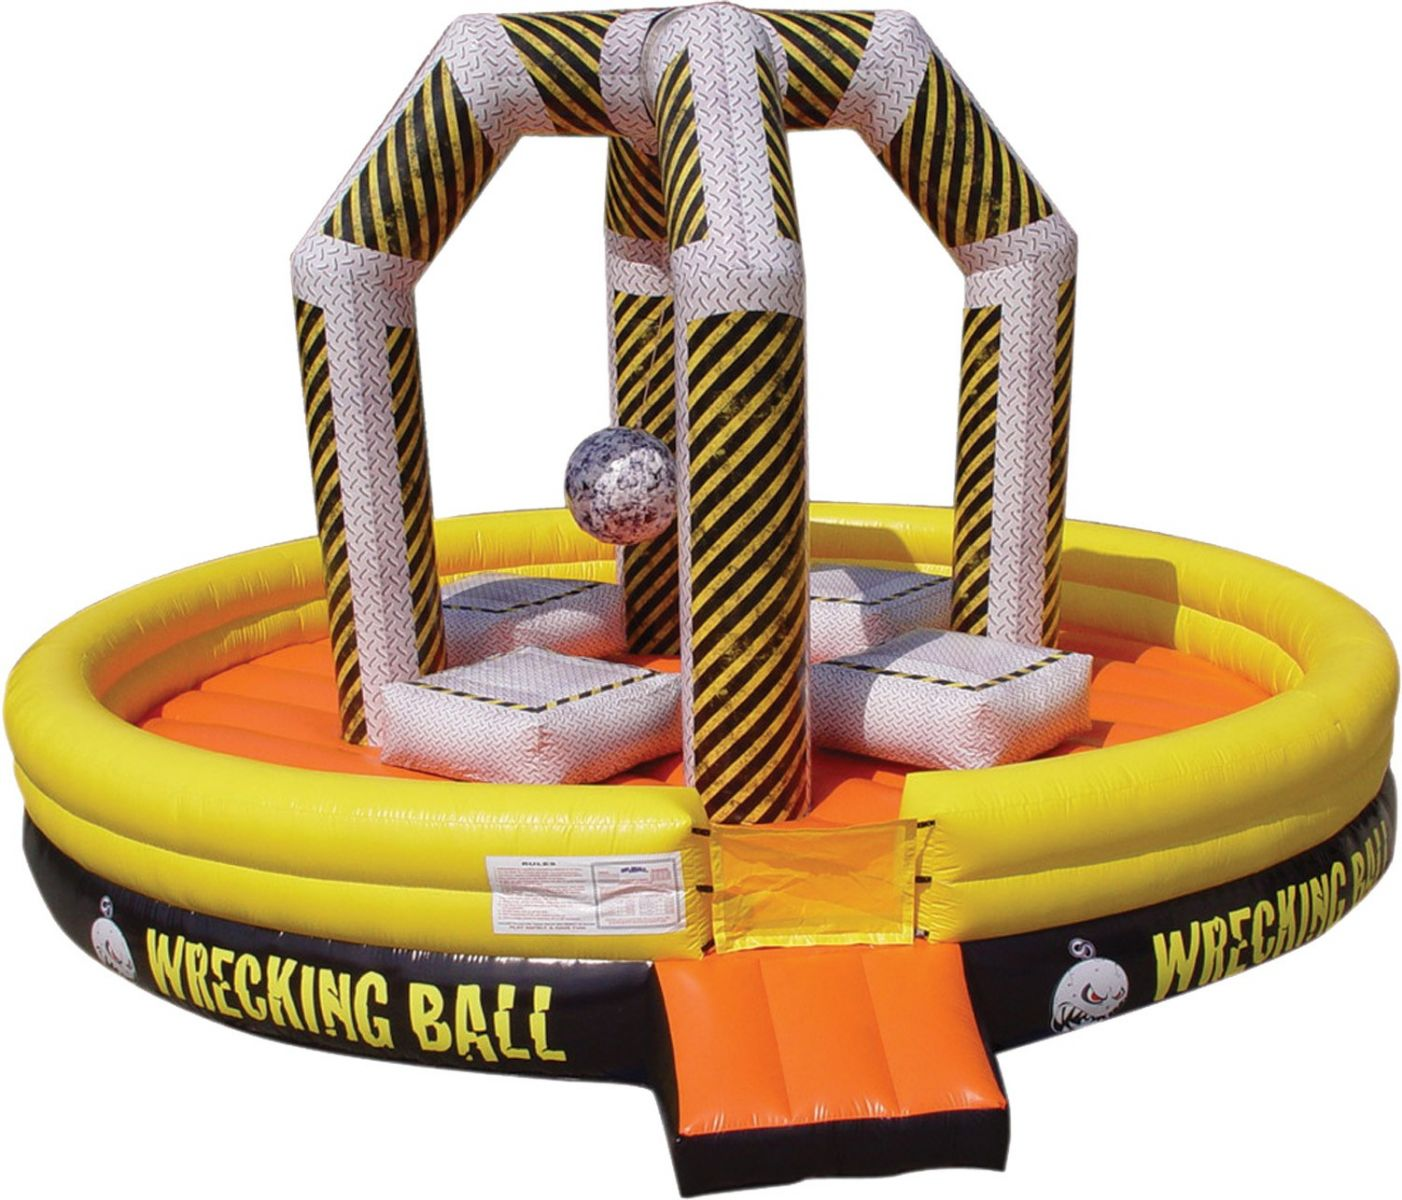 wrecking ball inflatable bounce house rental jacksonville florida